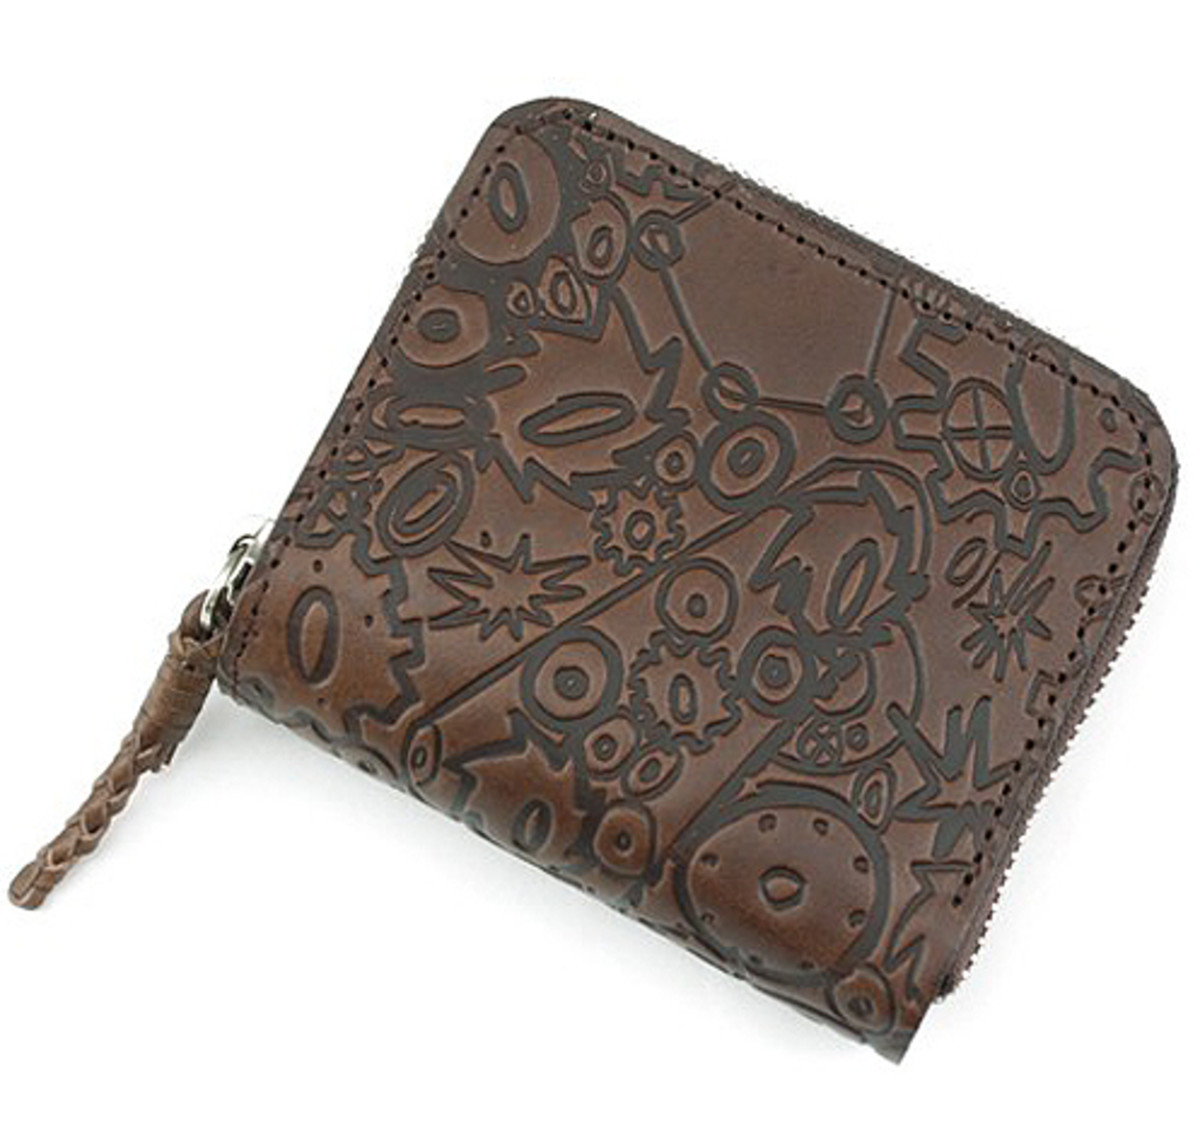 futura-laboratories-marker-graphic-embossed-wallet-02